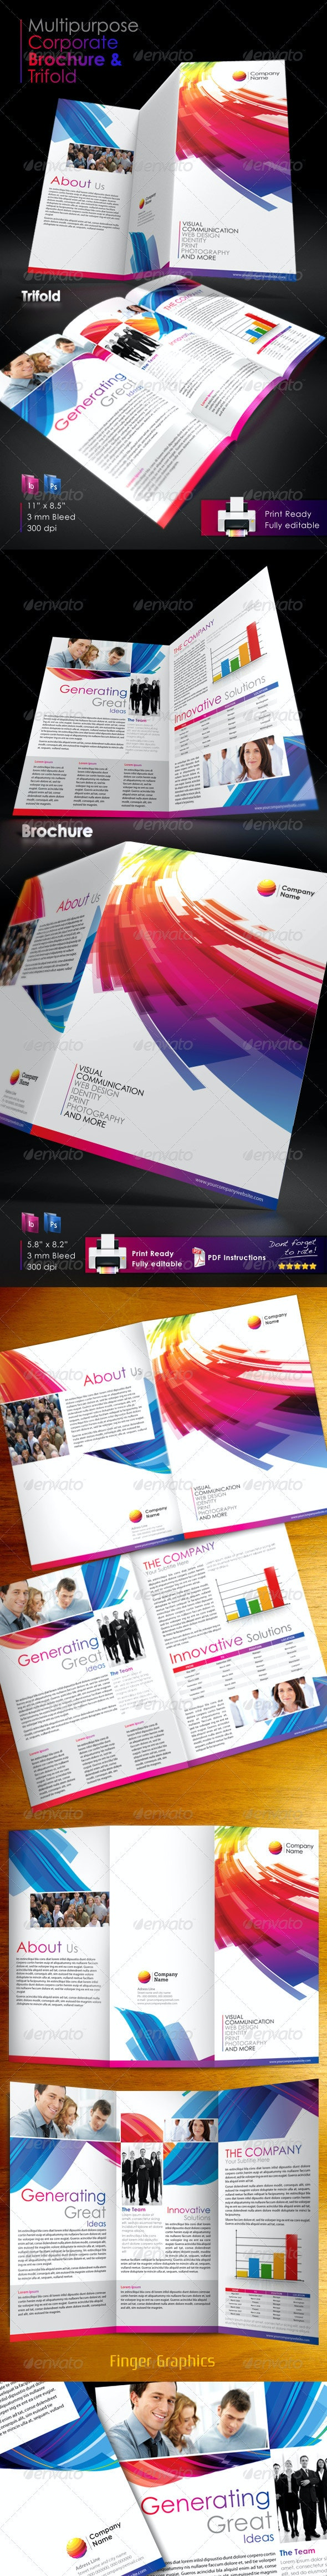 Multipurpose Corporate Brochure and Trifold - Corporate Brochures